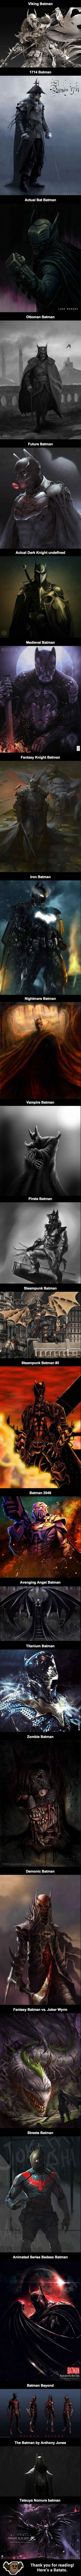 Alternate Fan Art Takes On Batman